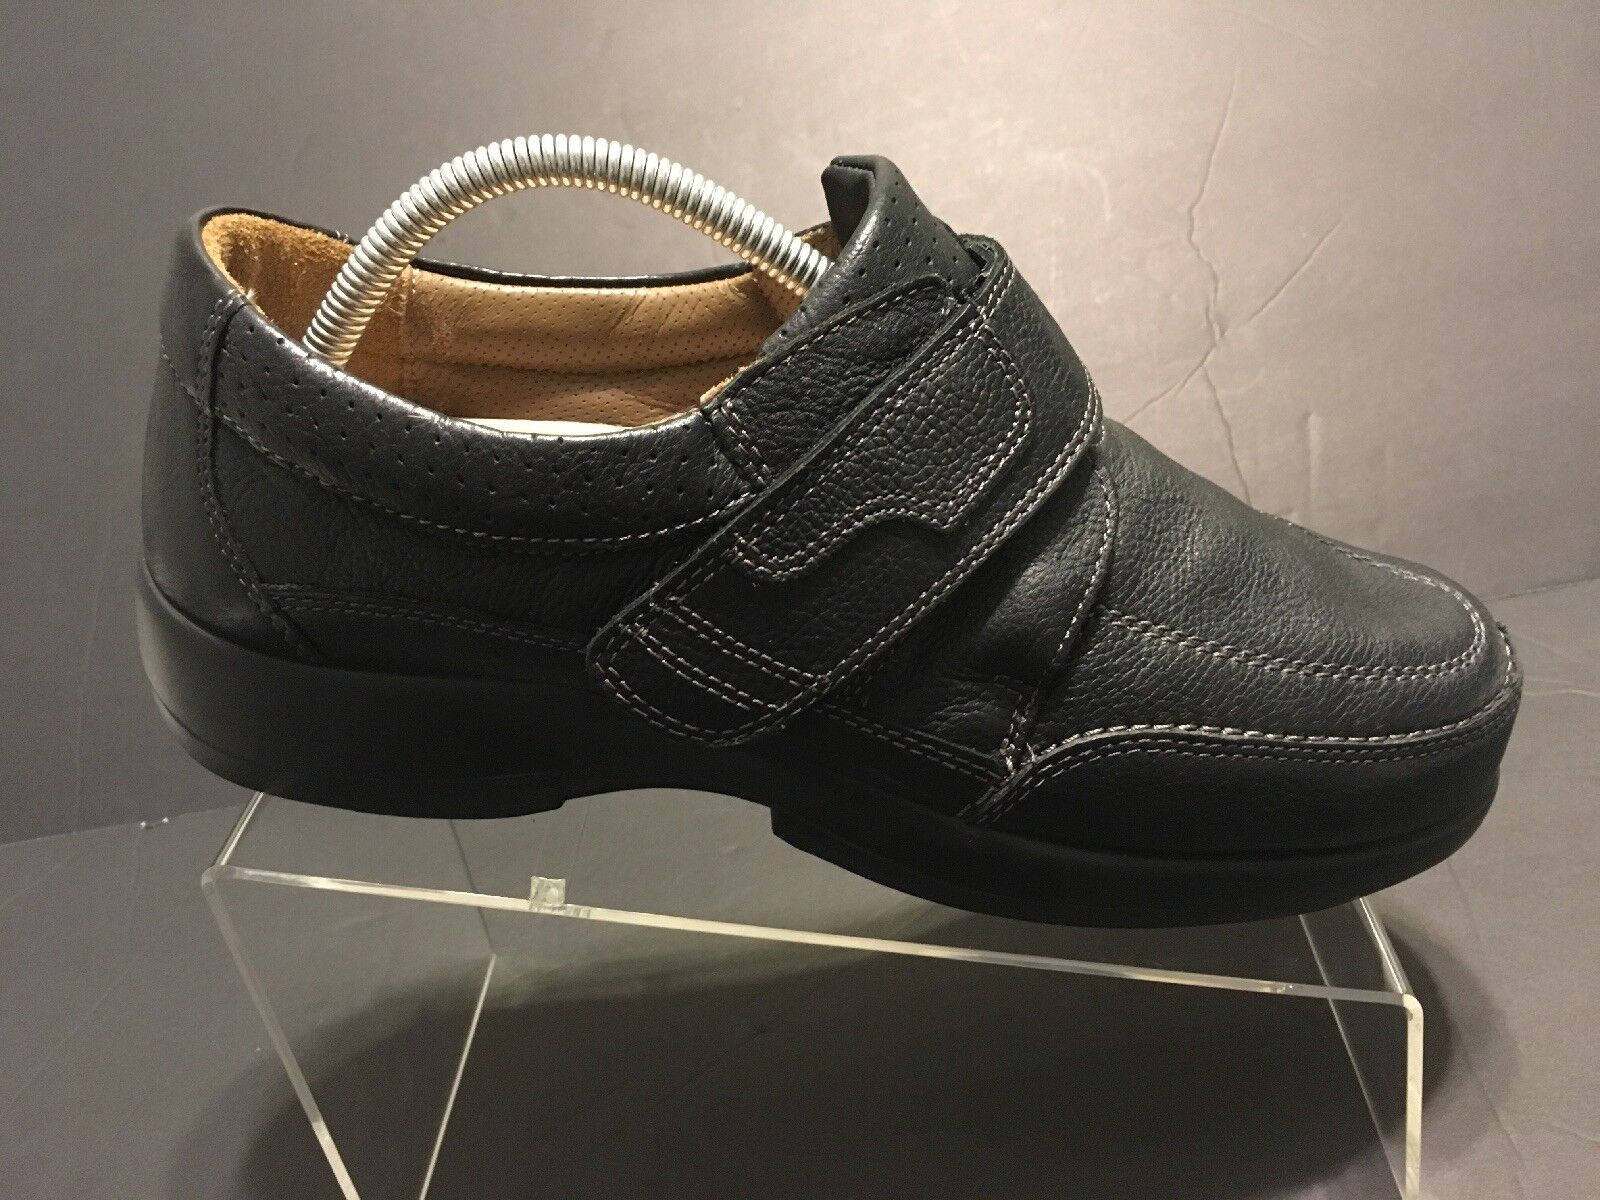 Areni One Black Leather Therapeutic Comfort shoes Mens Size 8 Wide 4E Made USA